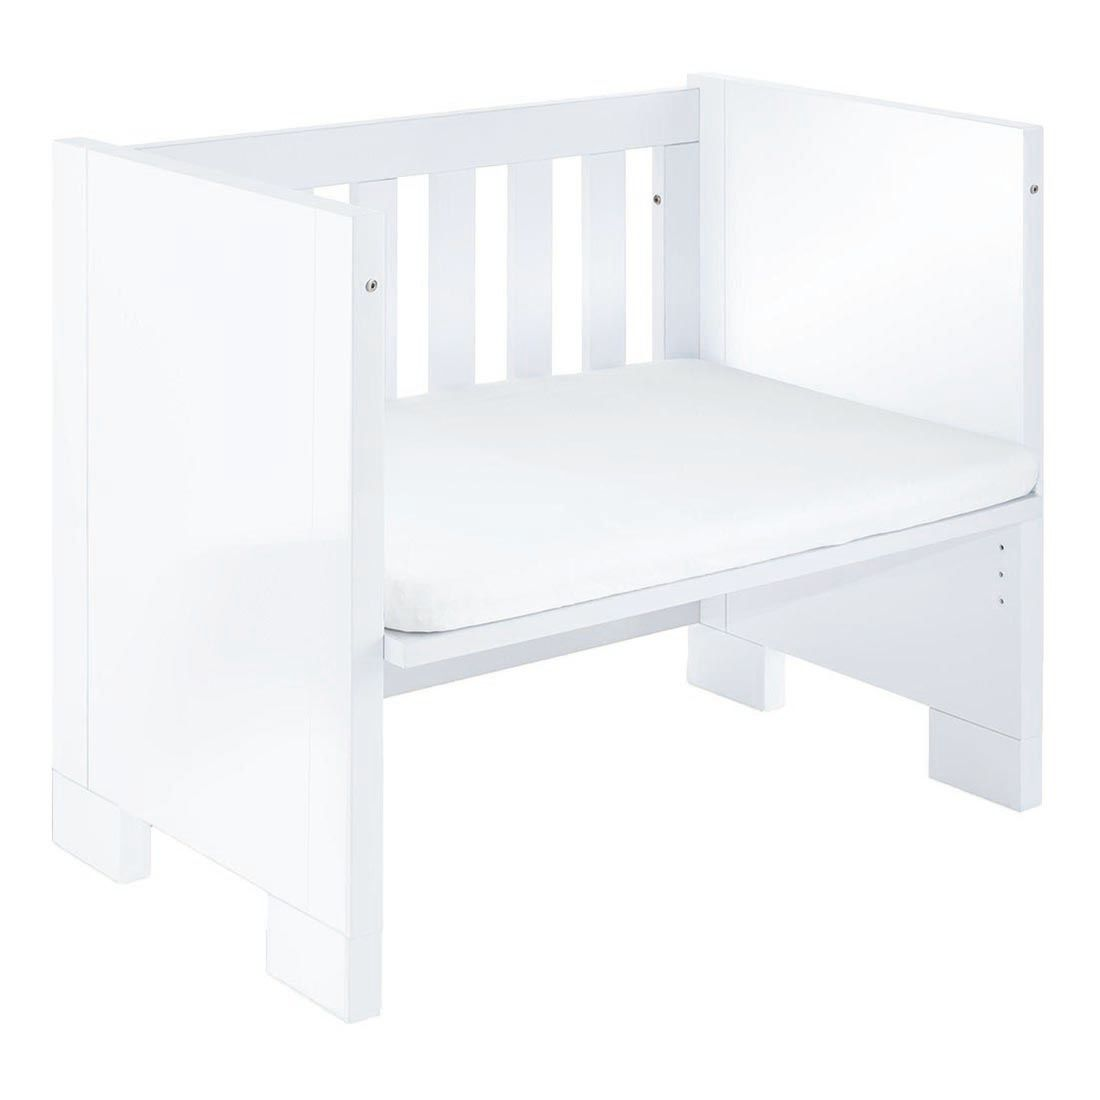 Lettino bedside Little Sky Kids - Bianco - Laccato, Pinolino